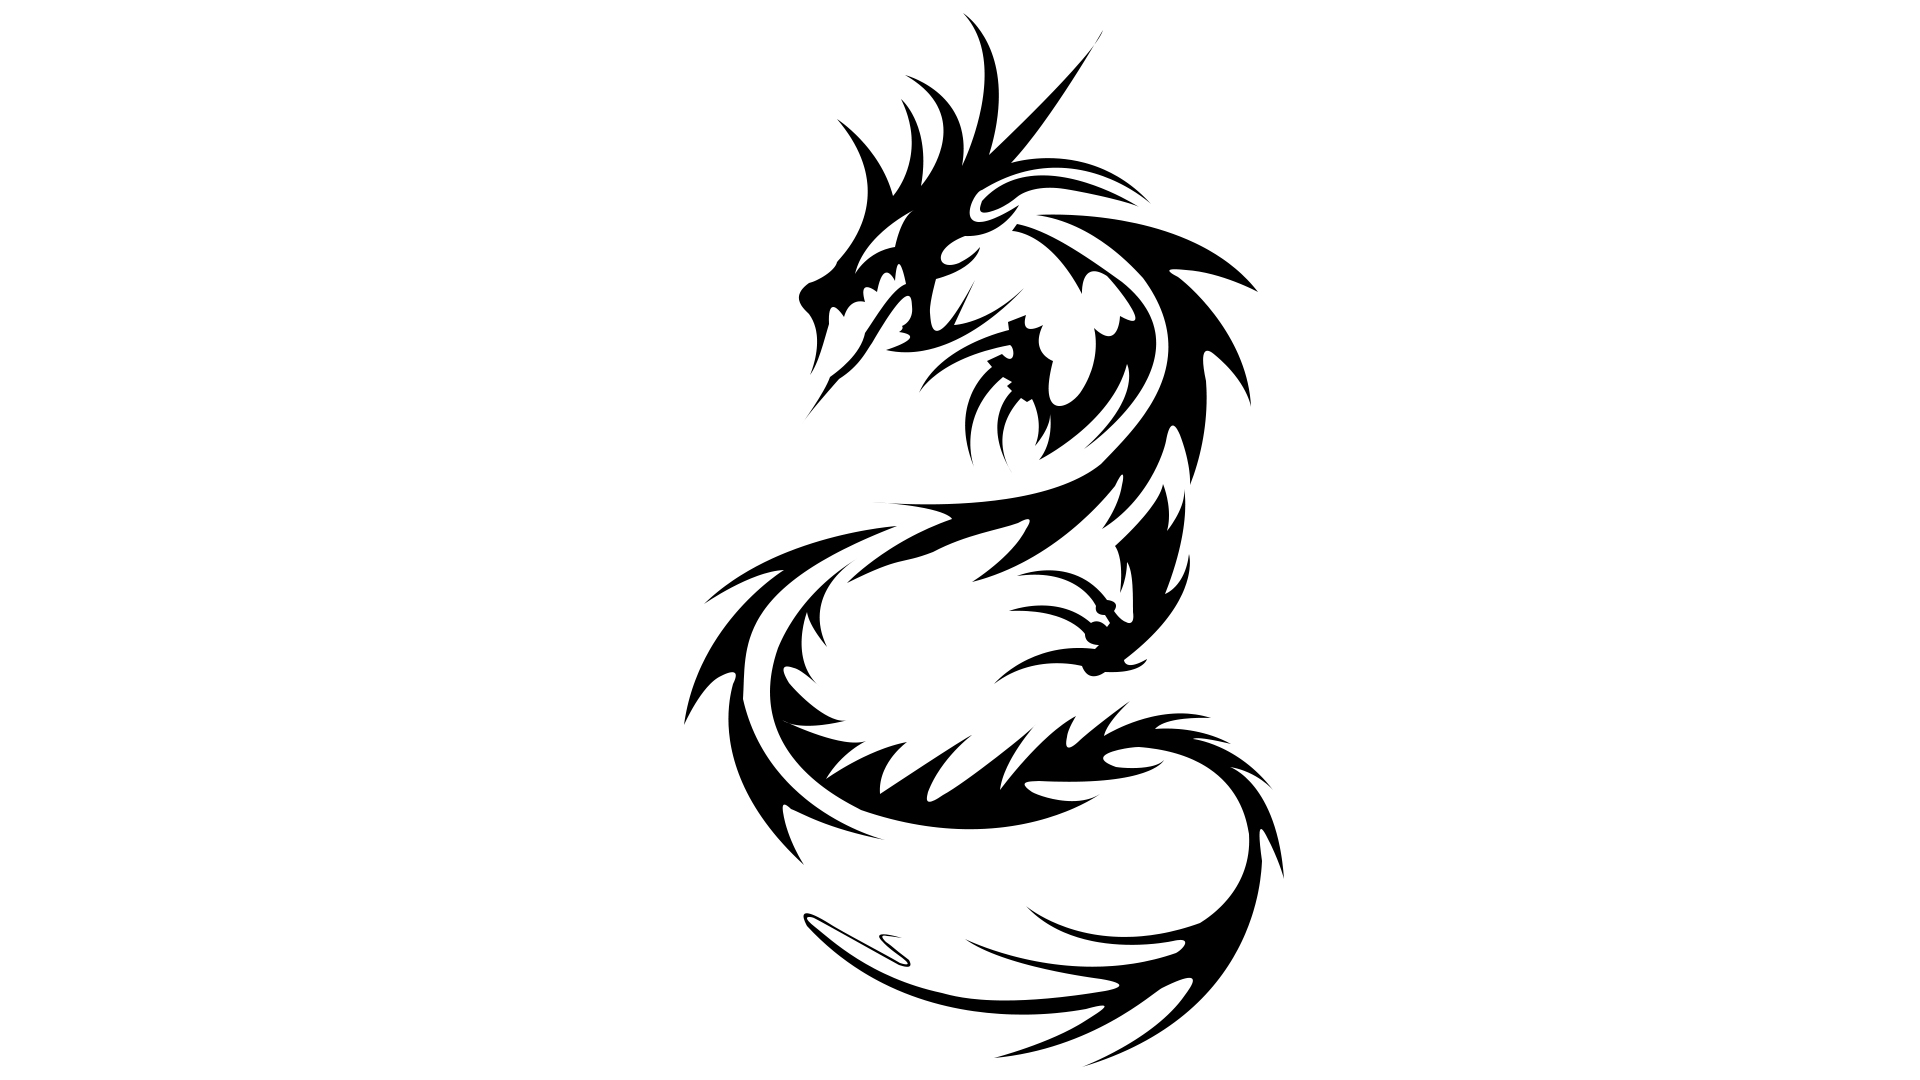 Dragon Black And White Tribal Wallpaper   ClipArt Best 1920x1080